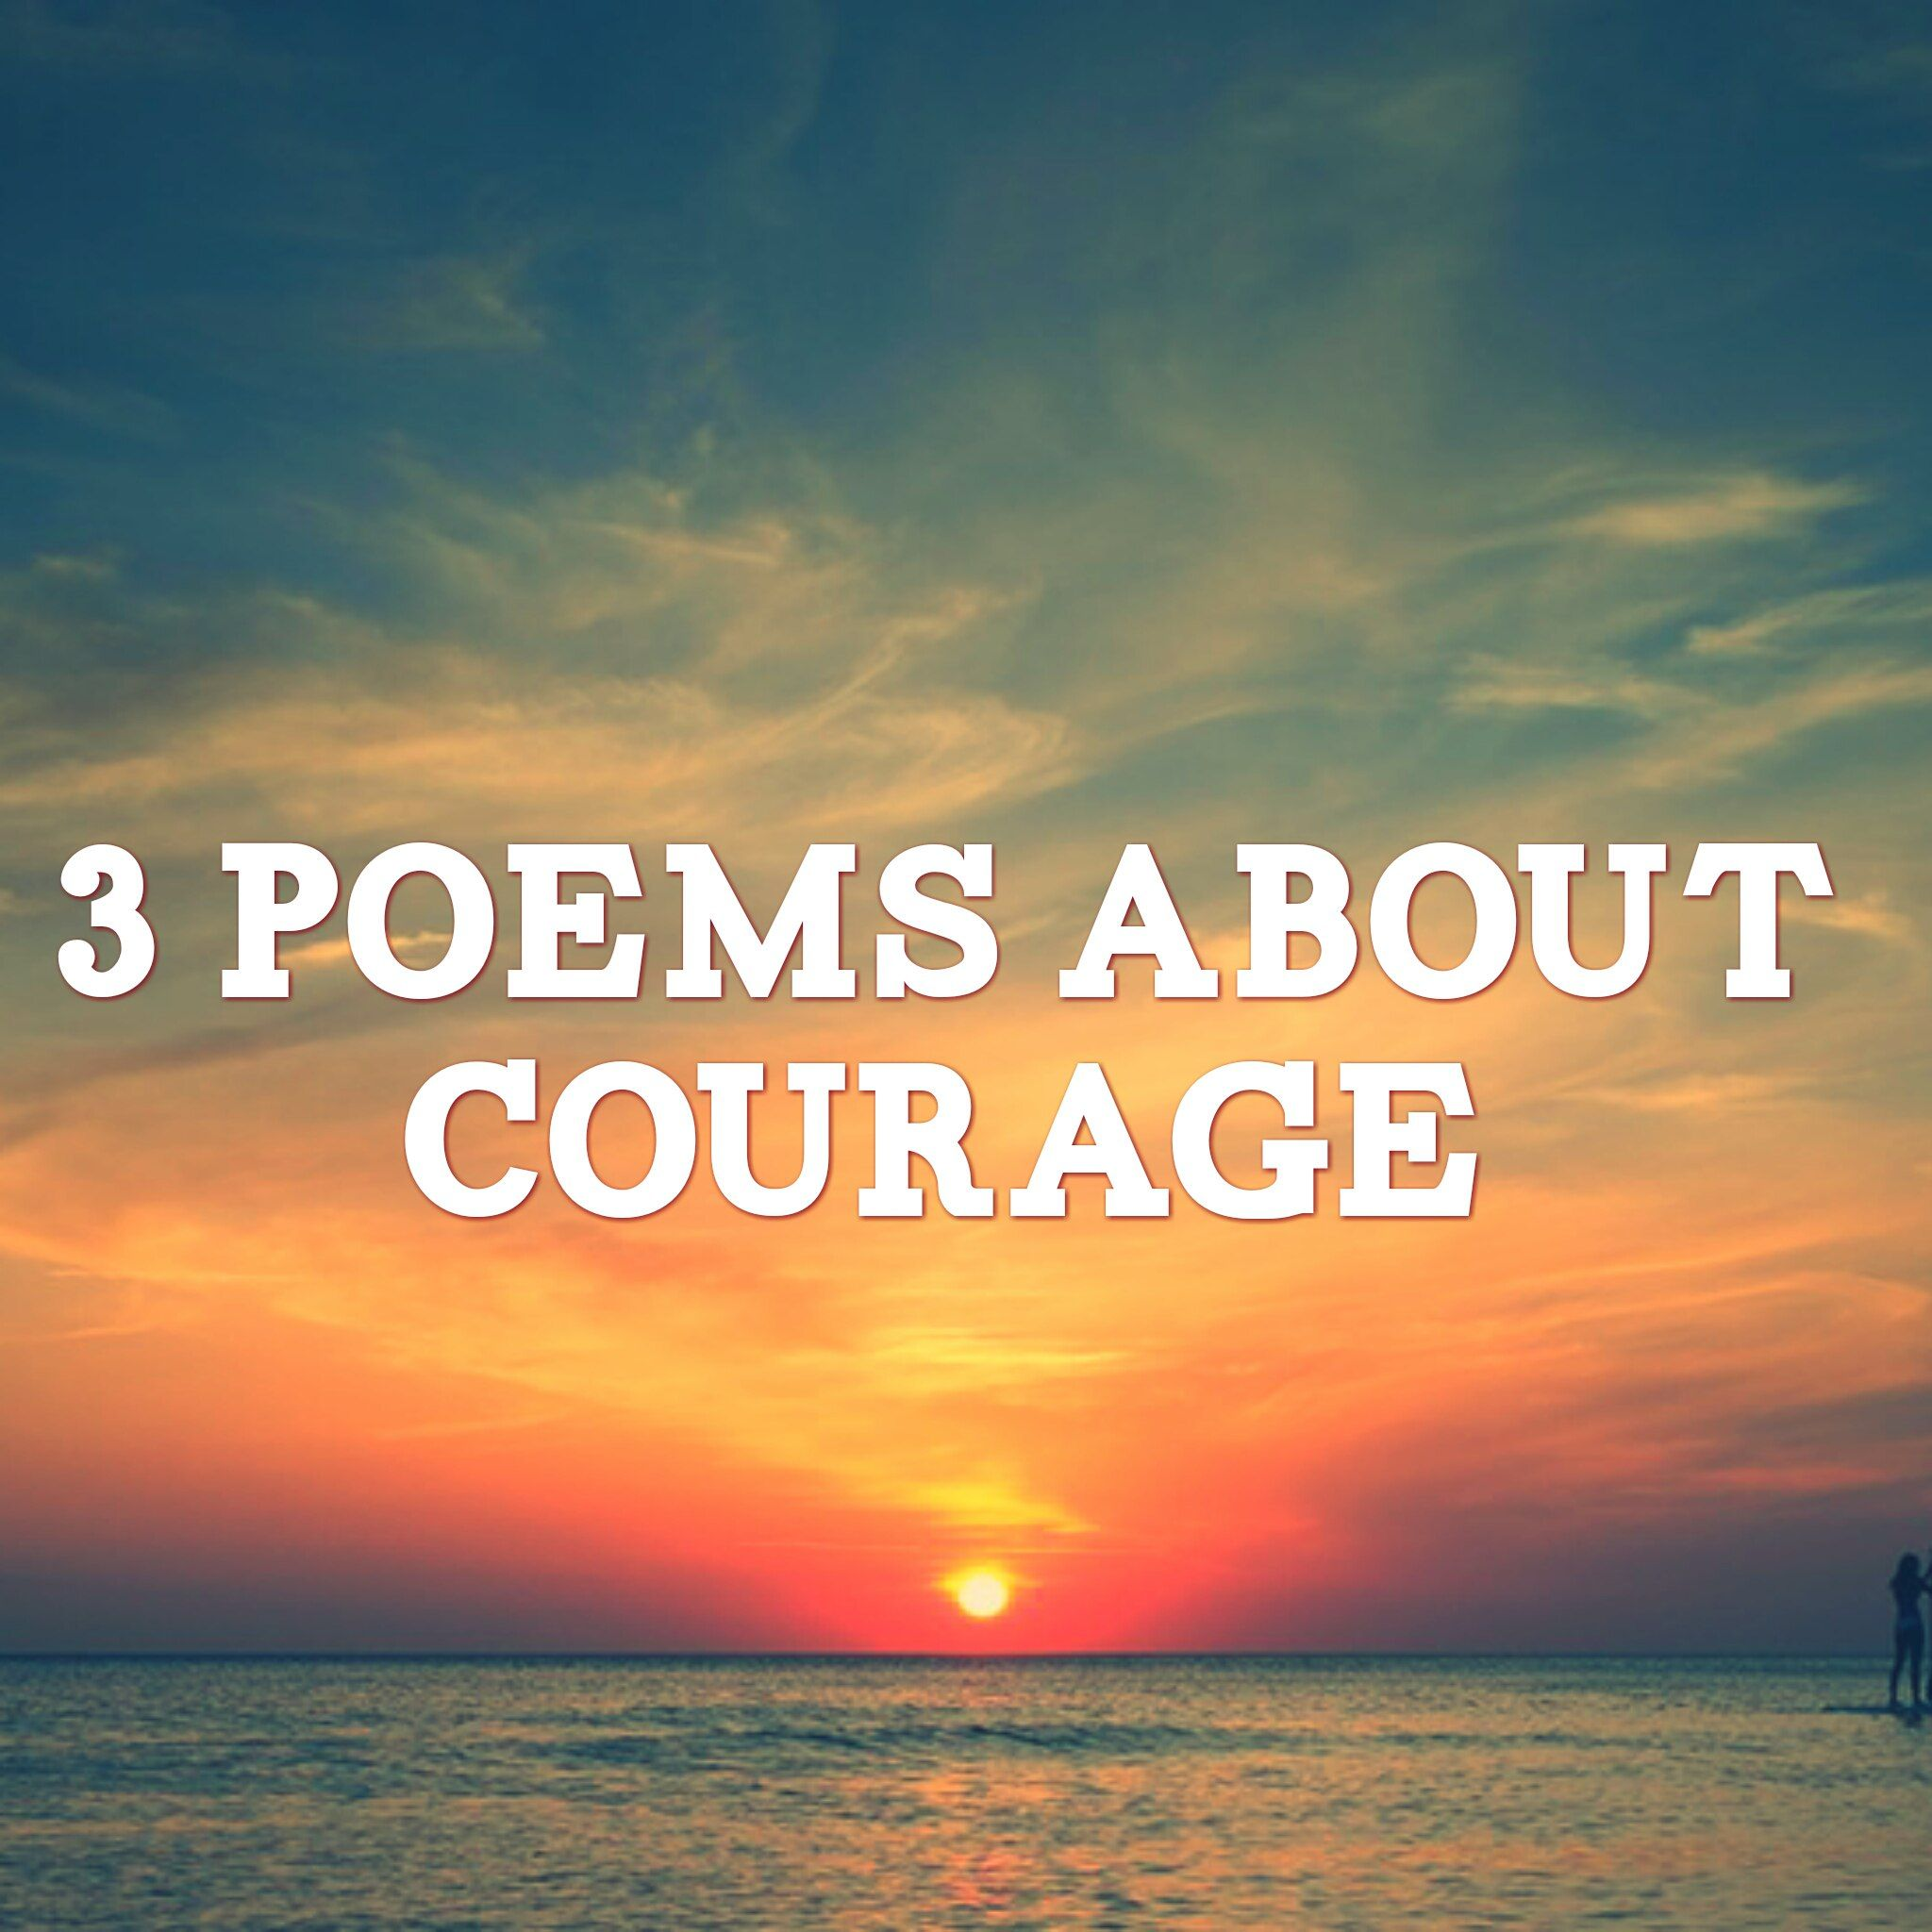 3 inspirational poems on courage